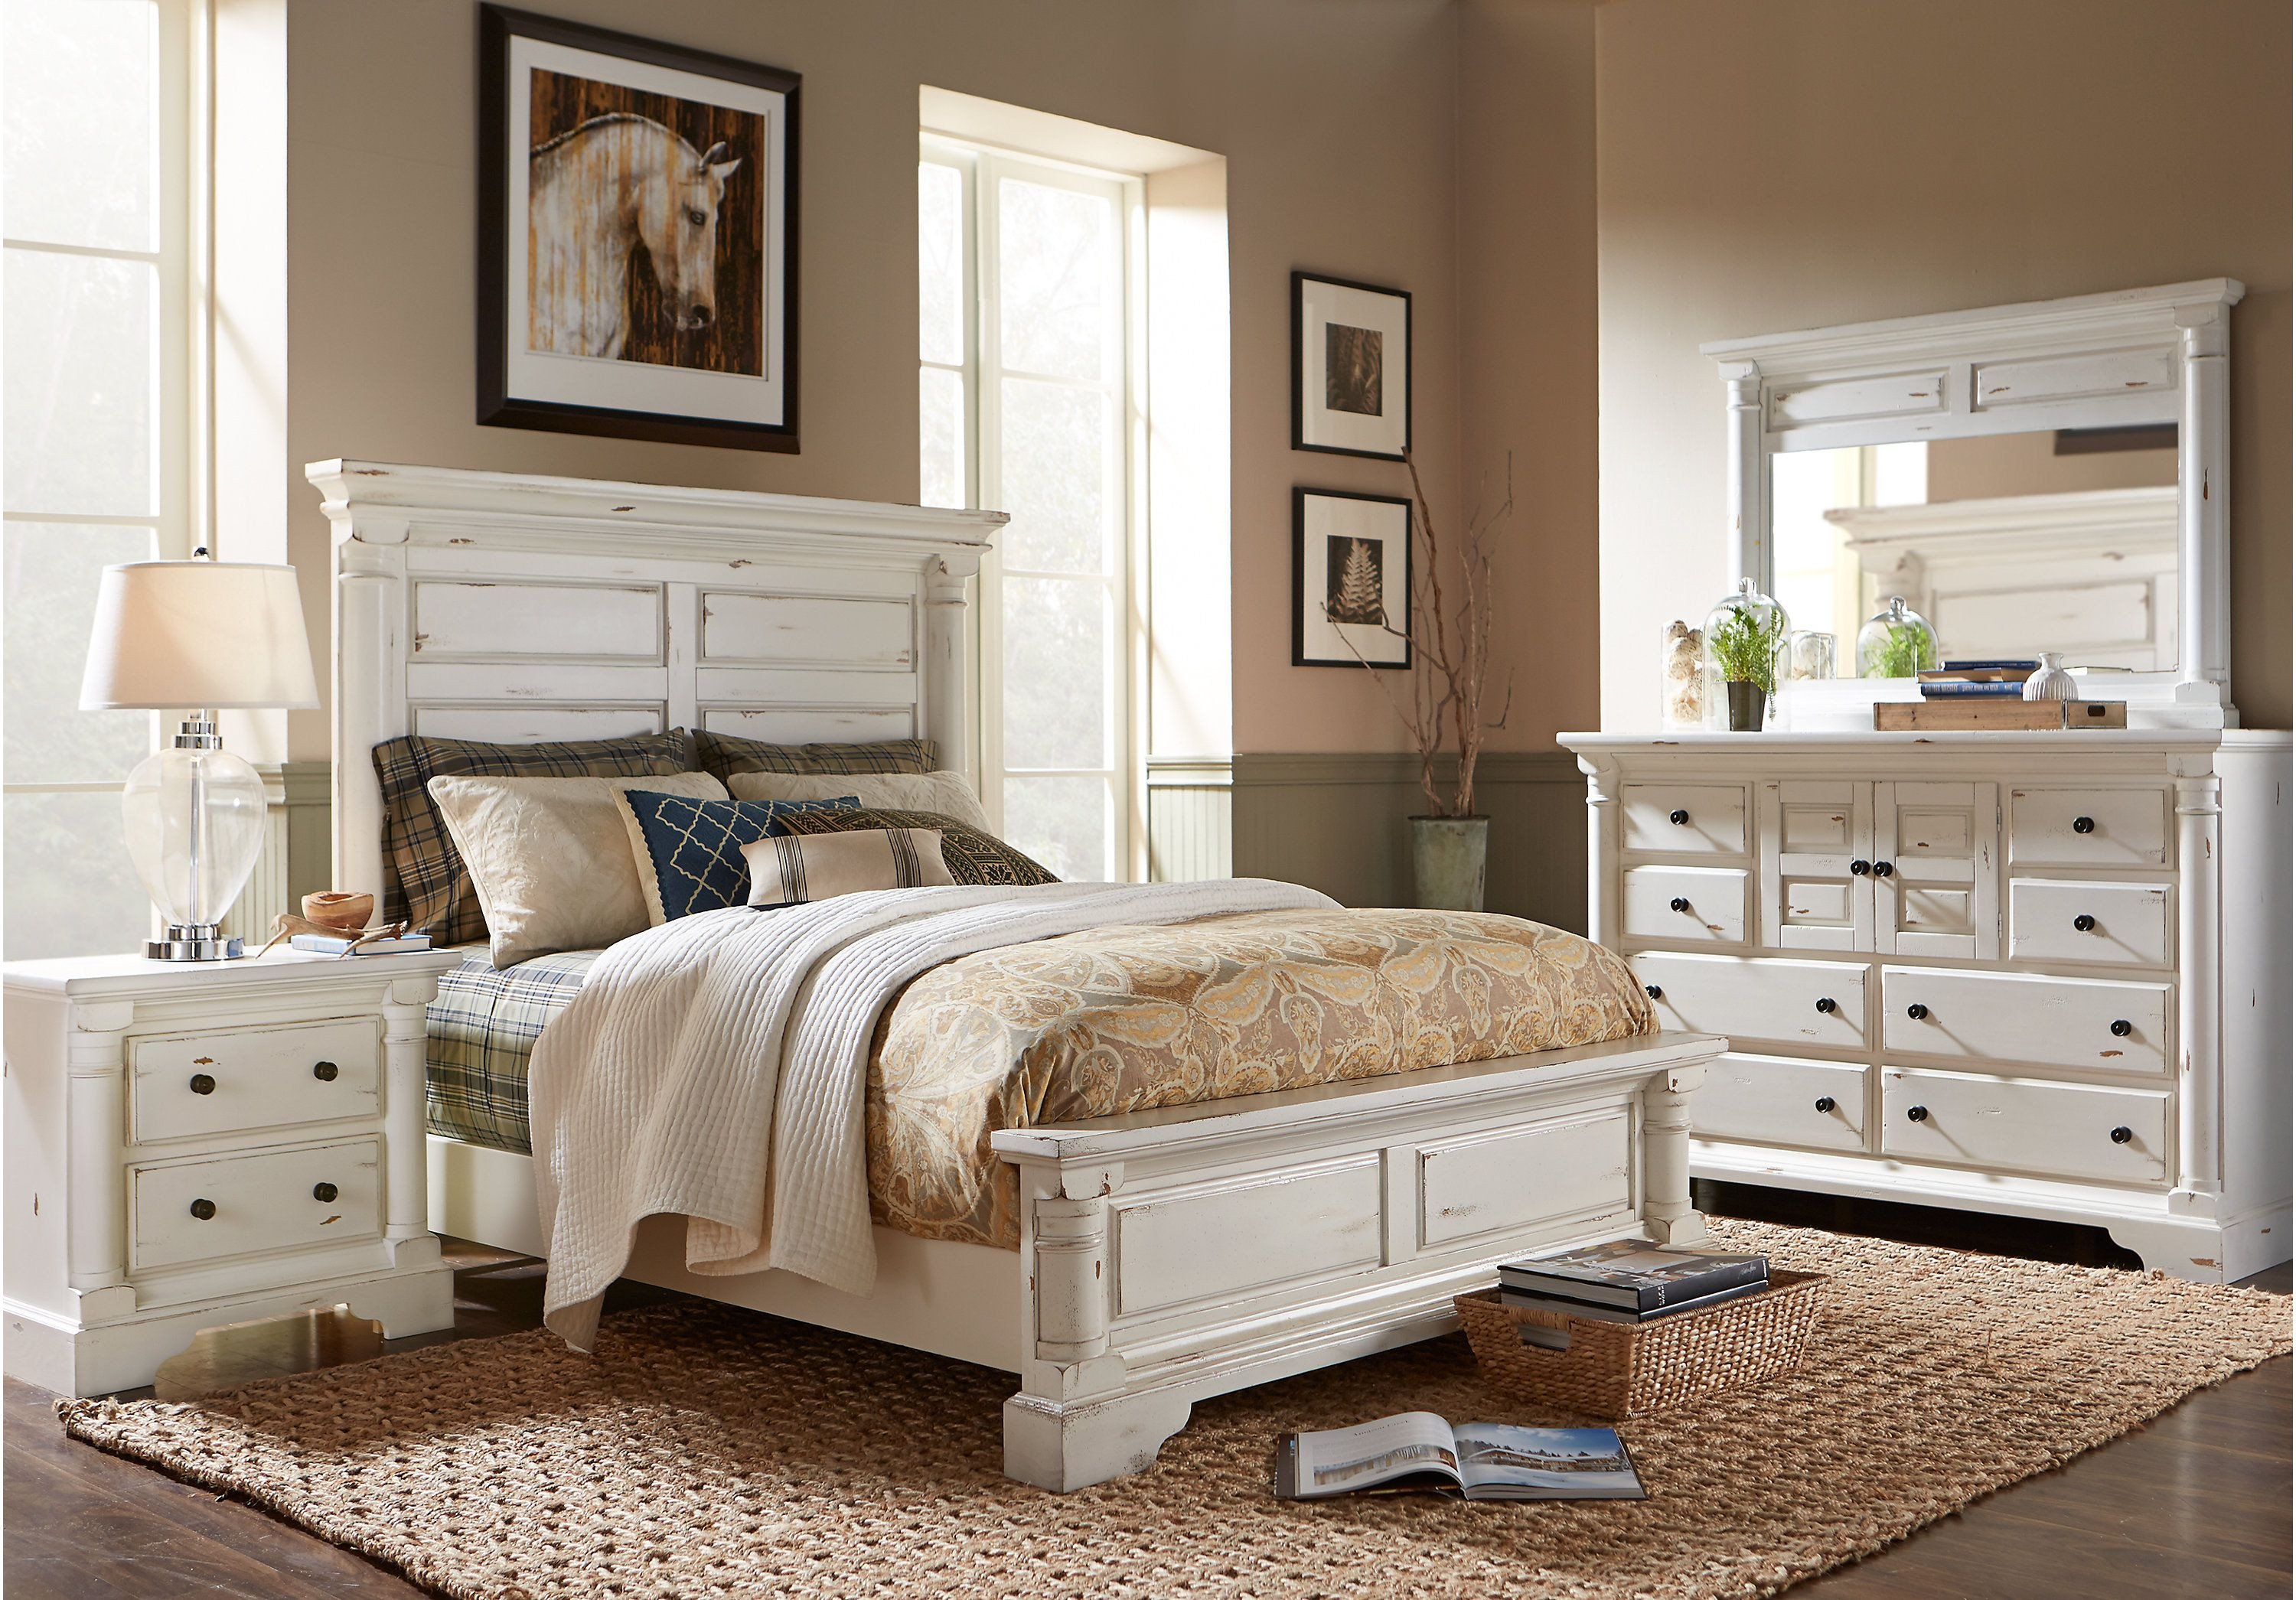 Ikea Bedroom Furniture Set New Claymore Park F White 8 Pc King Panel Bedroom